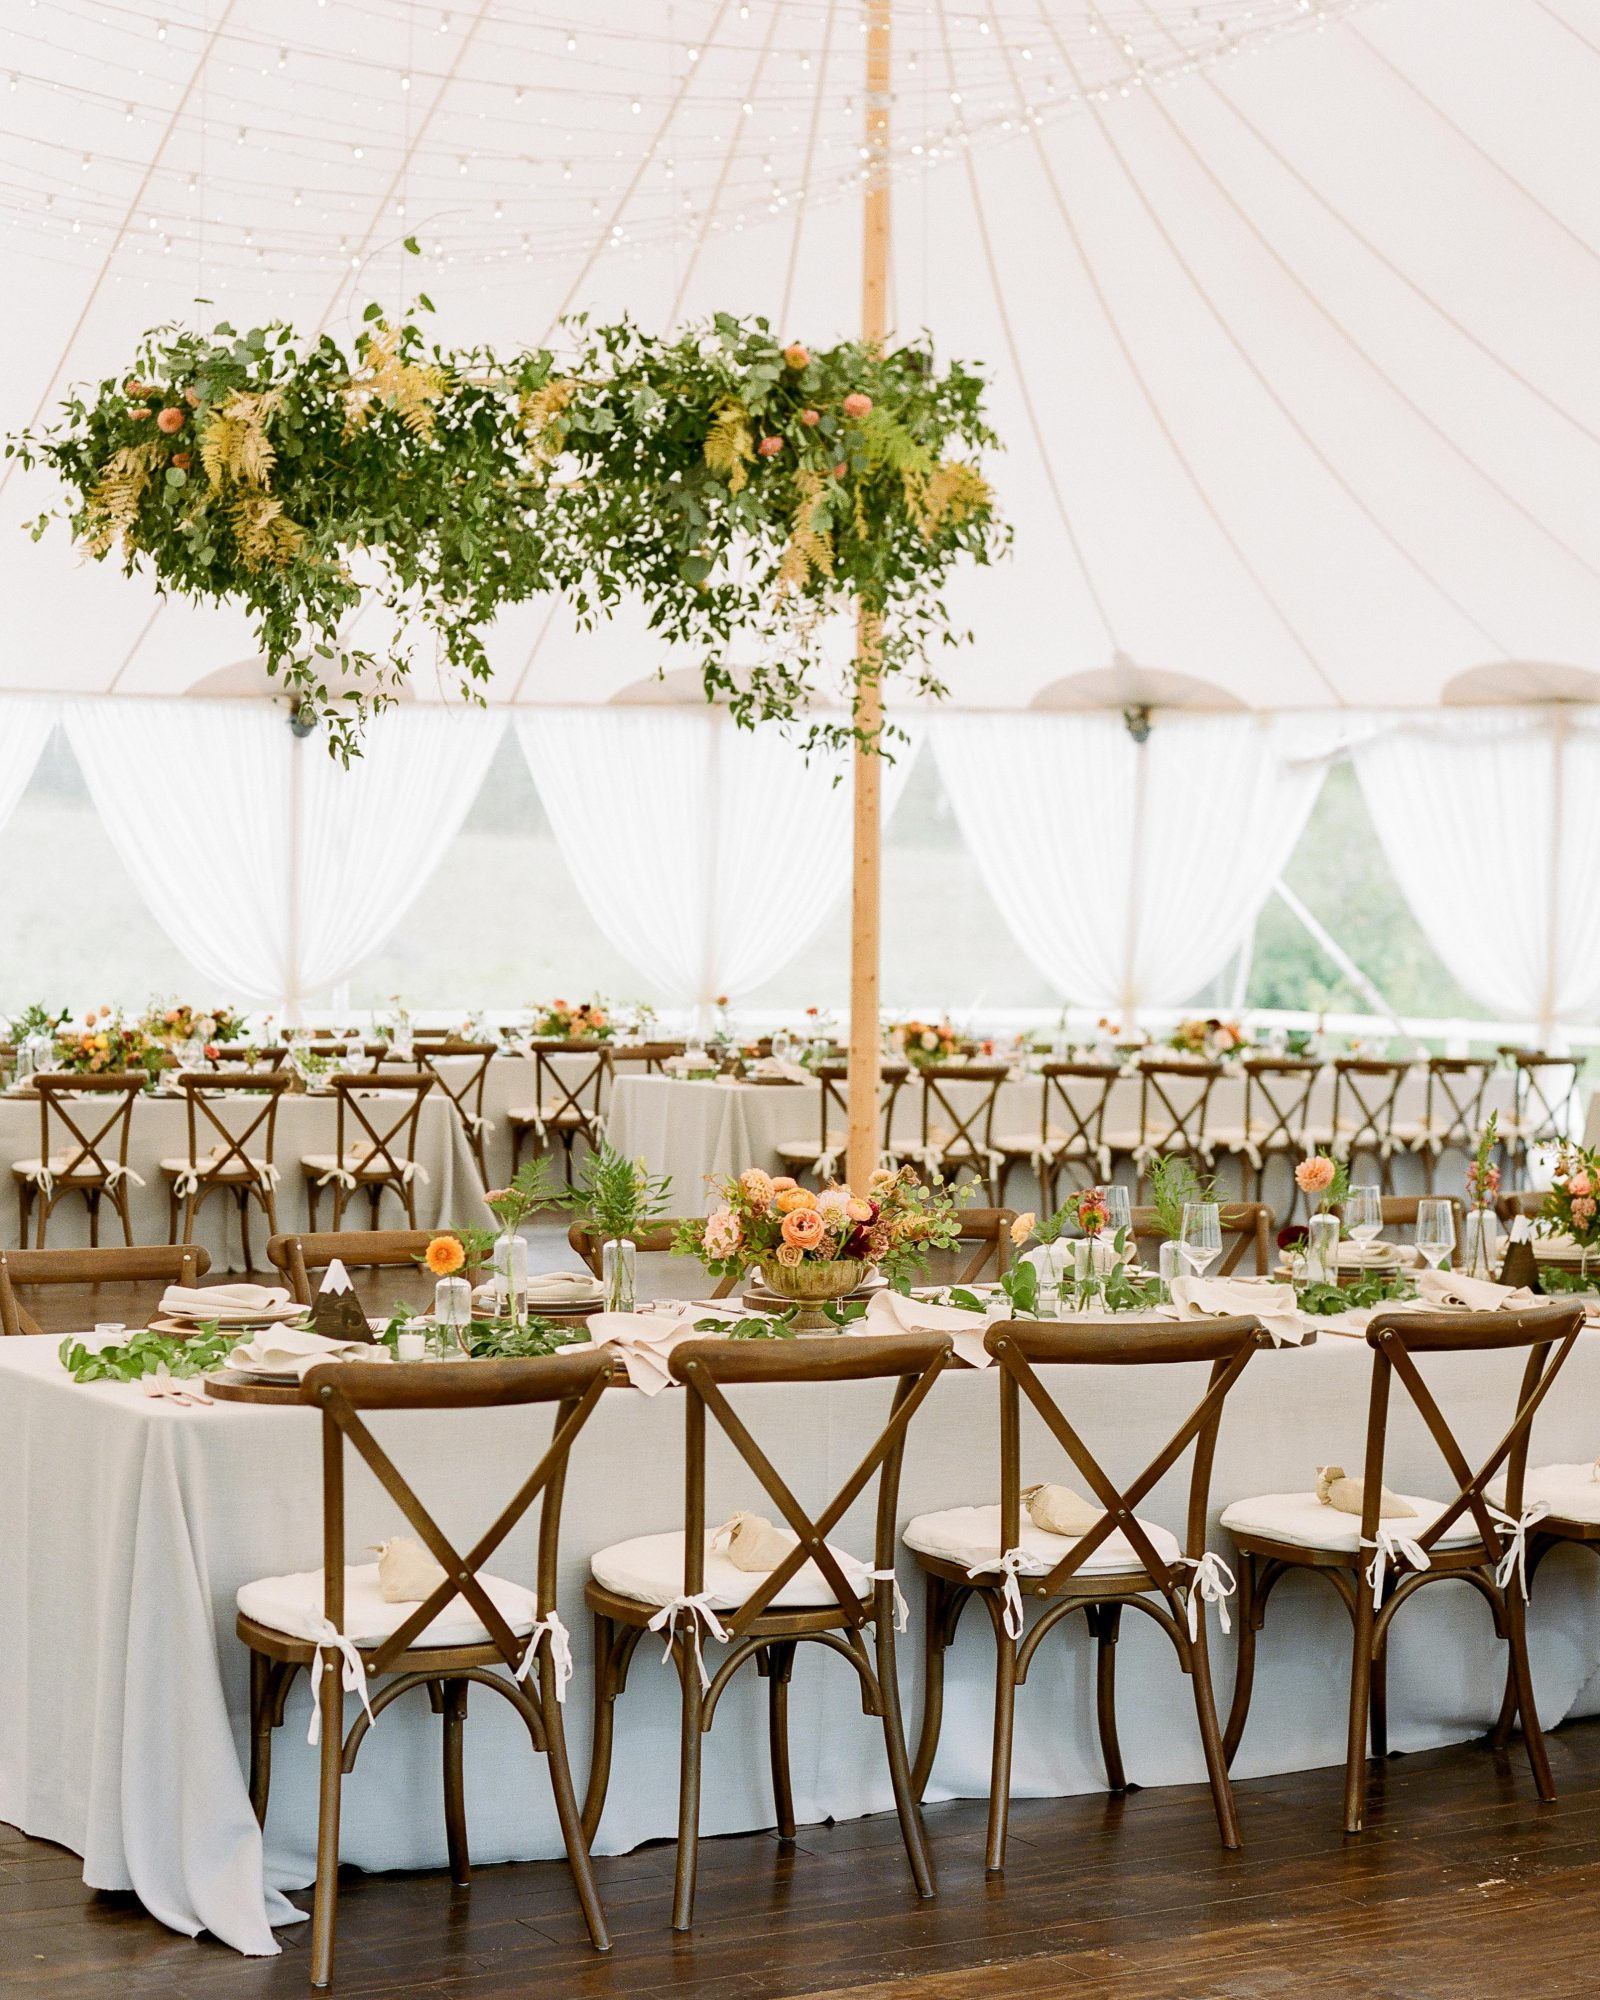 jill phil wedding reception with hanging flower decor